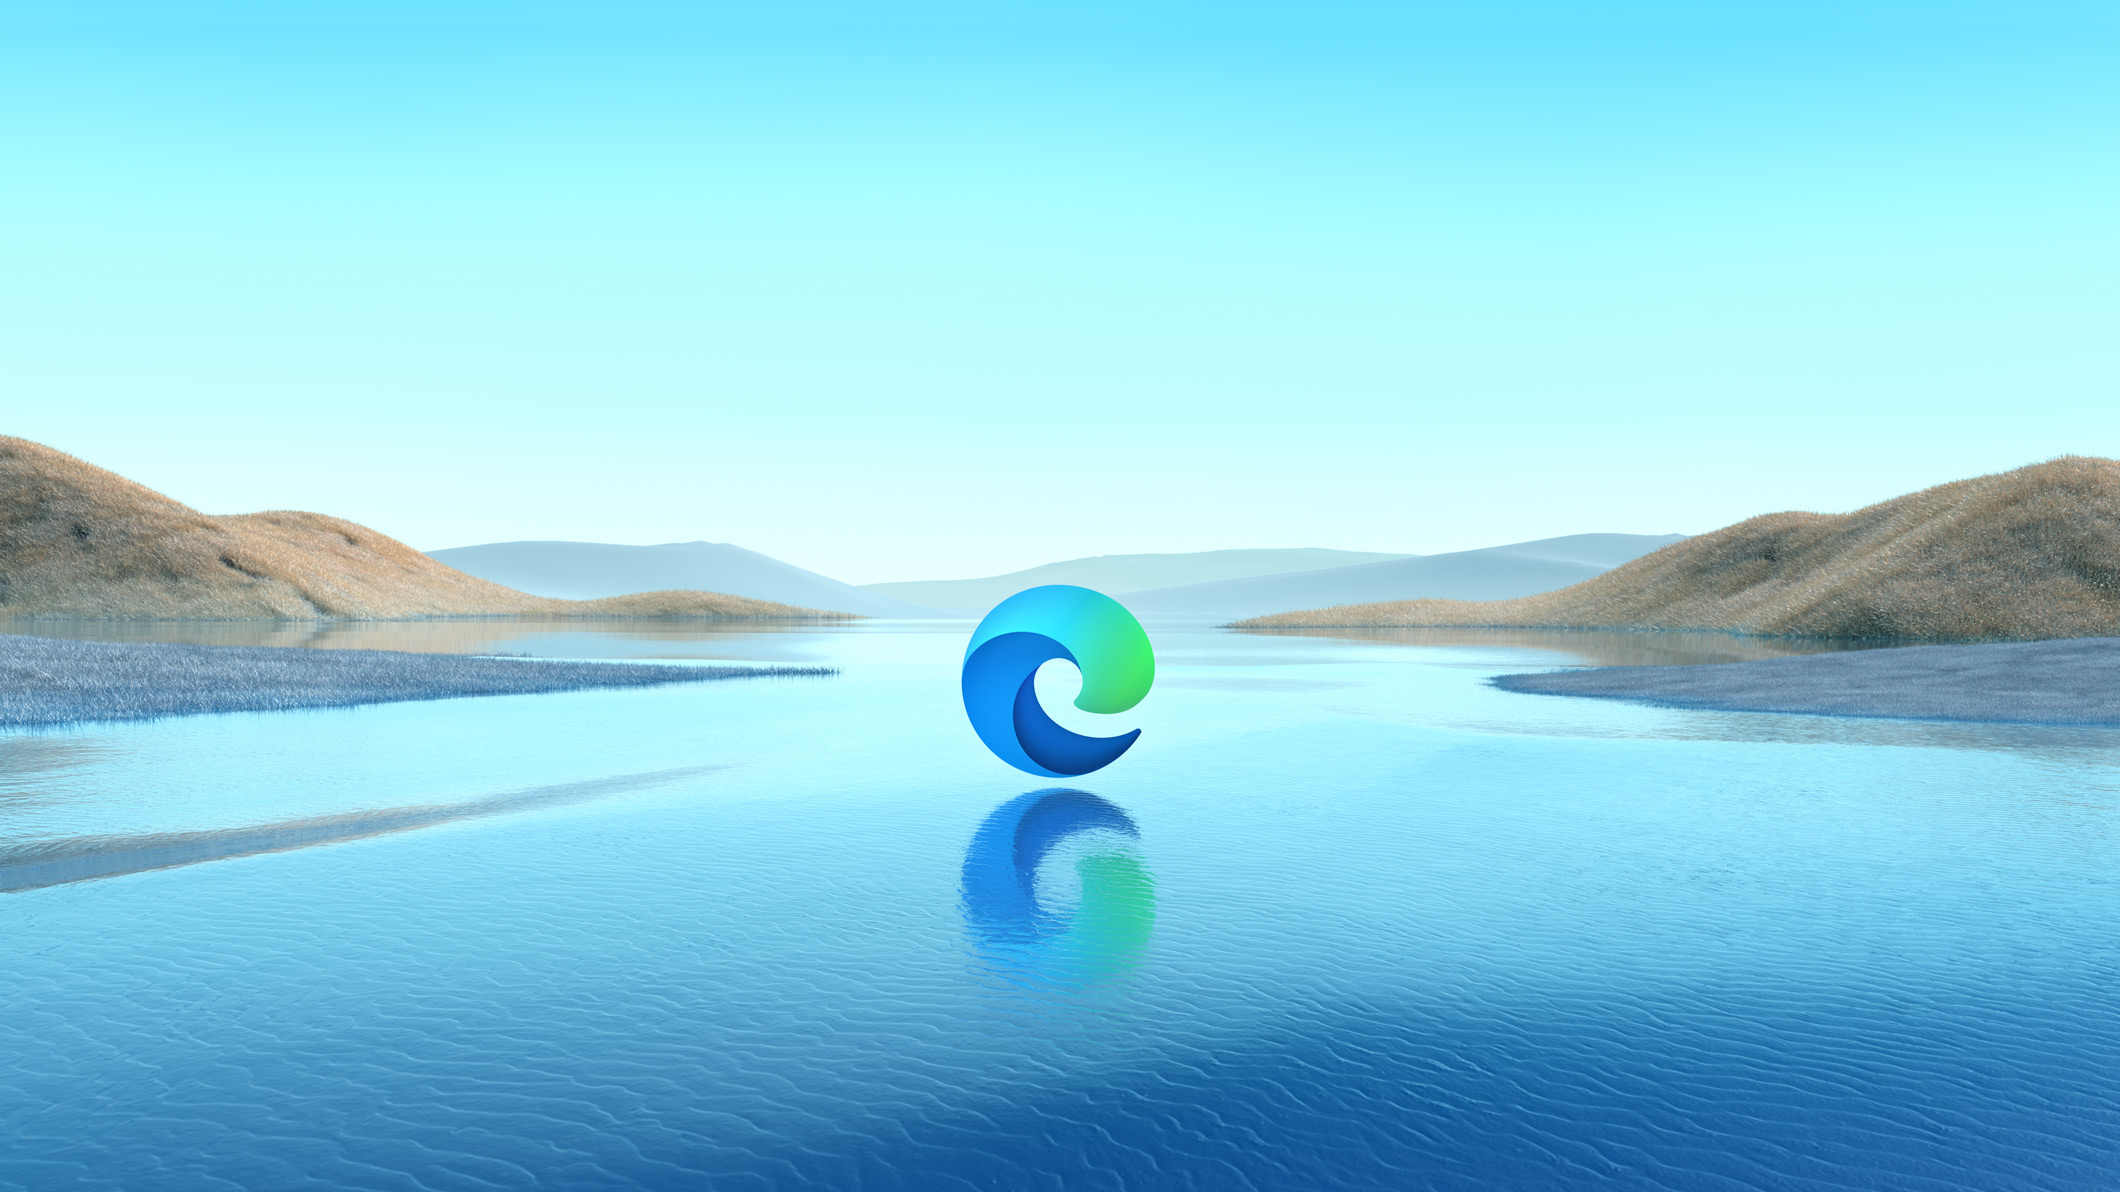 Promotional graphics showing a Microsoft Edge logo on water